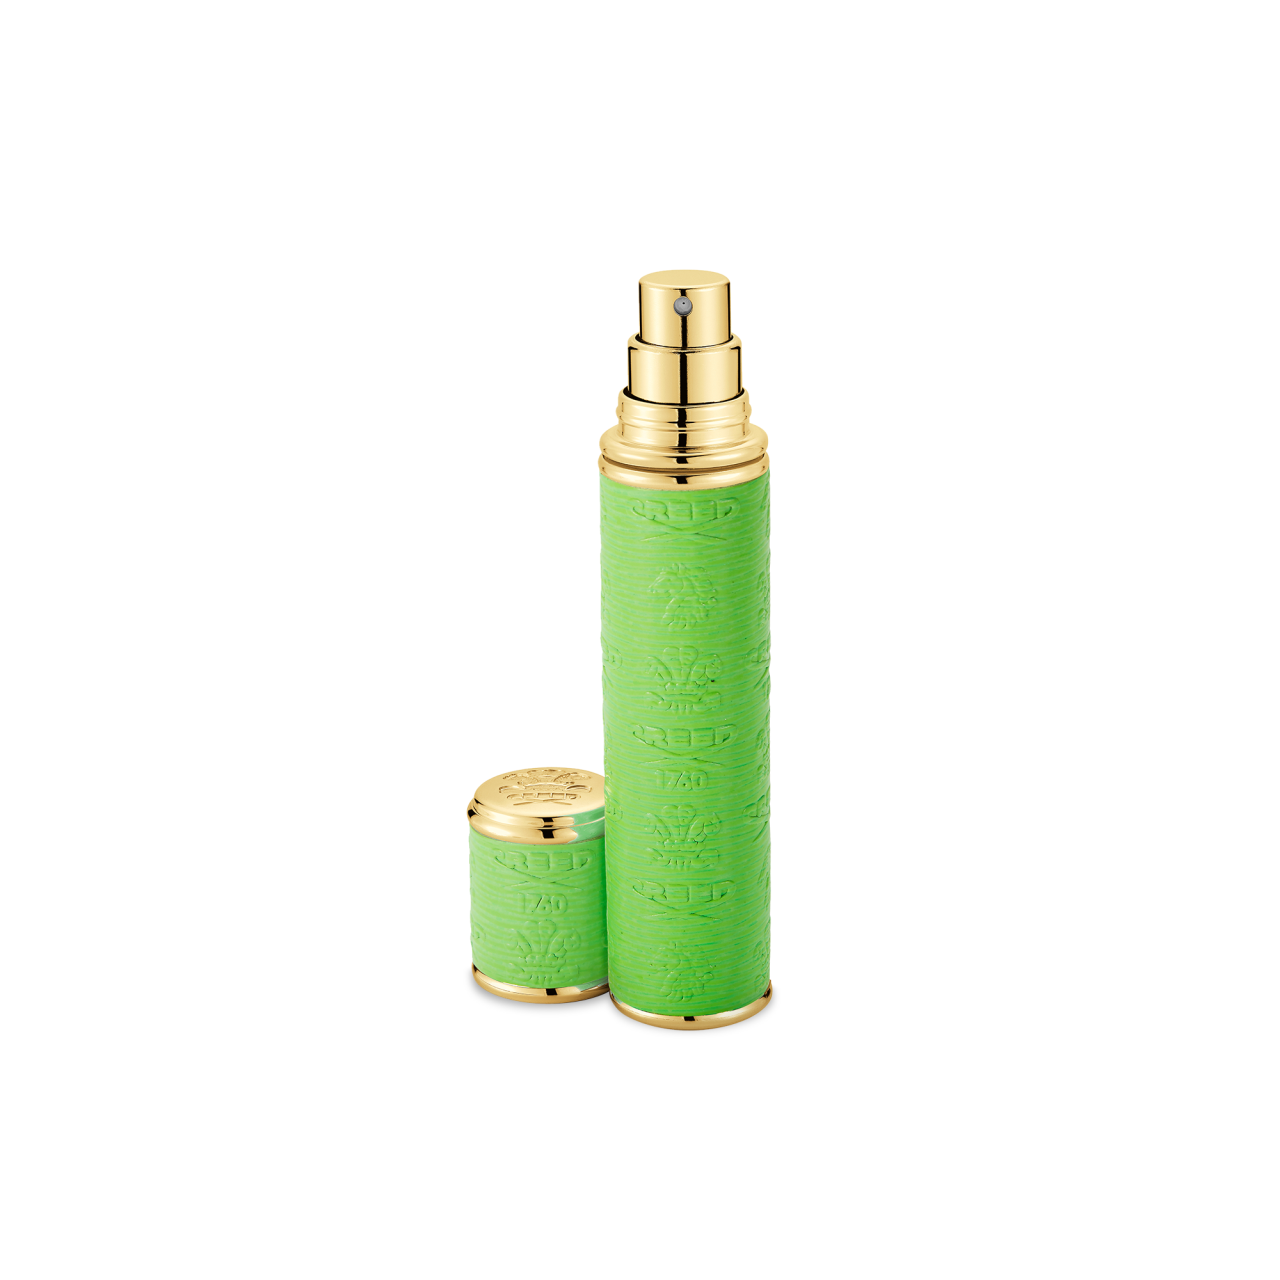 Neon Green With Gold Trim Pocket Atomizer